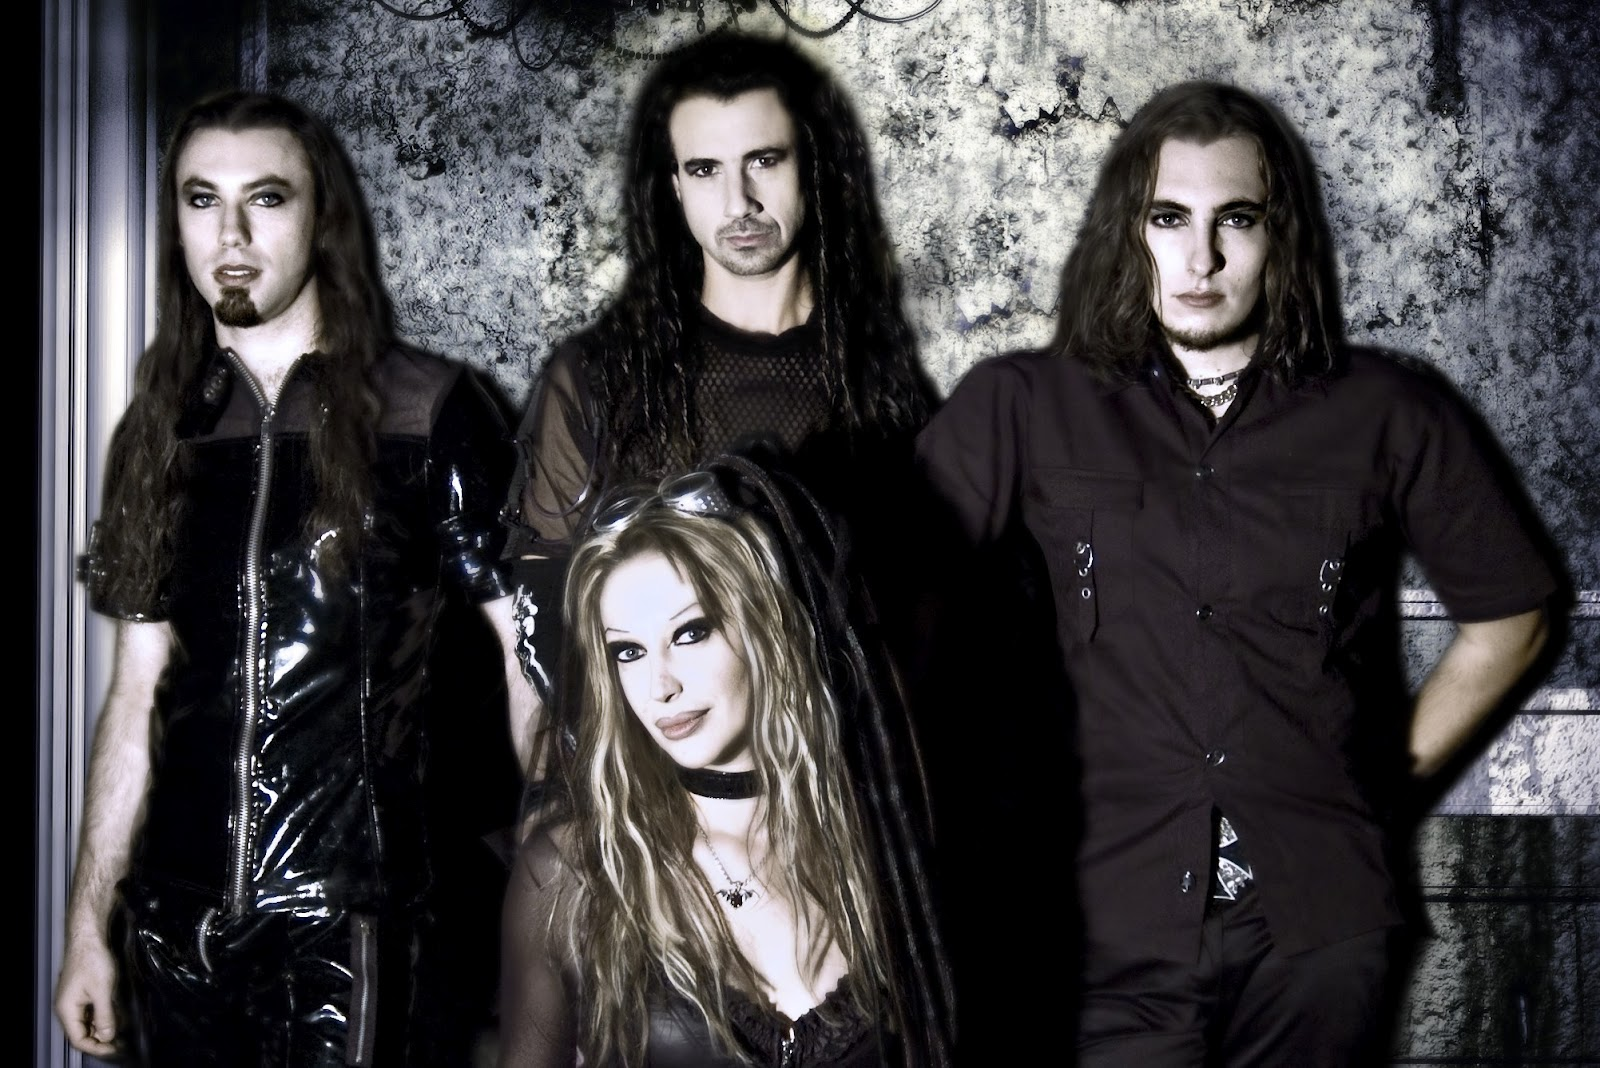 Sirens of Darkness: List of Female Metal Bands - Part 3